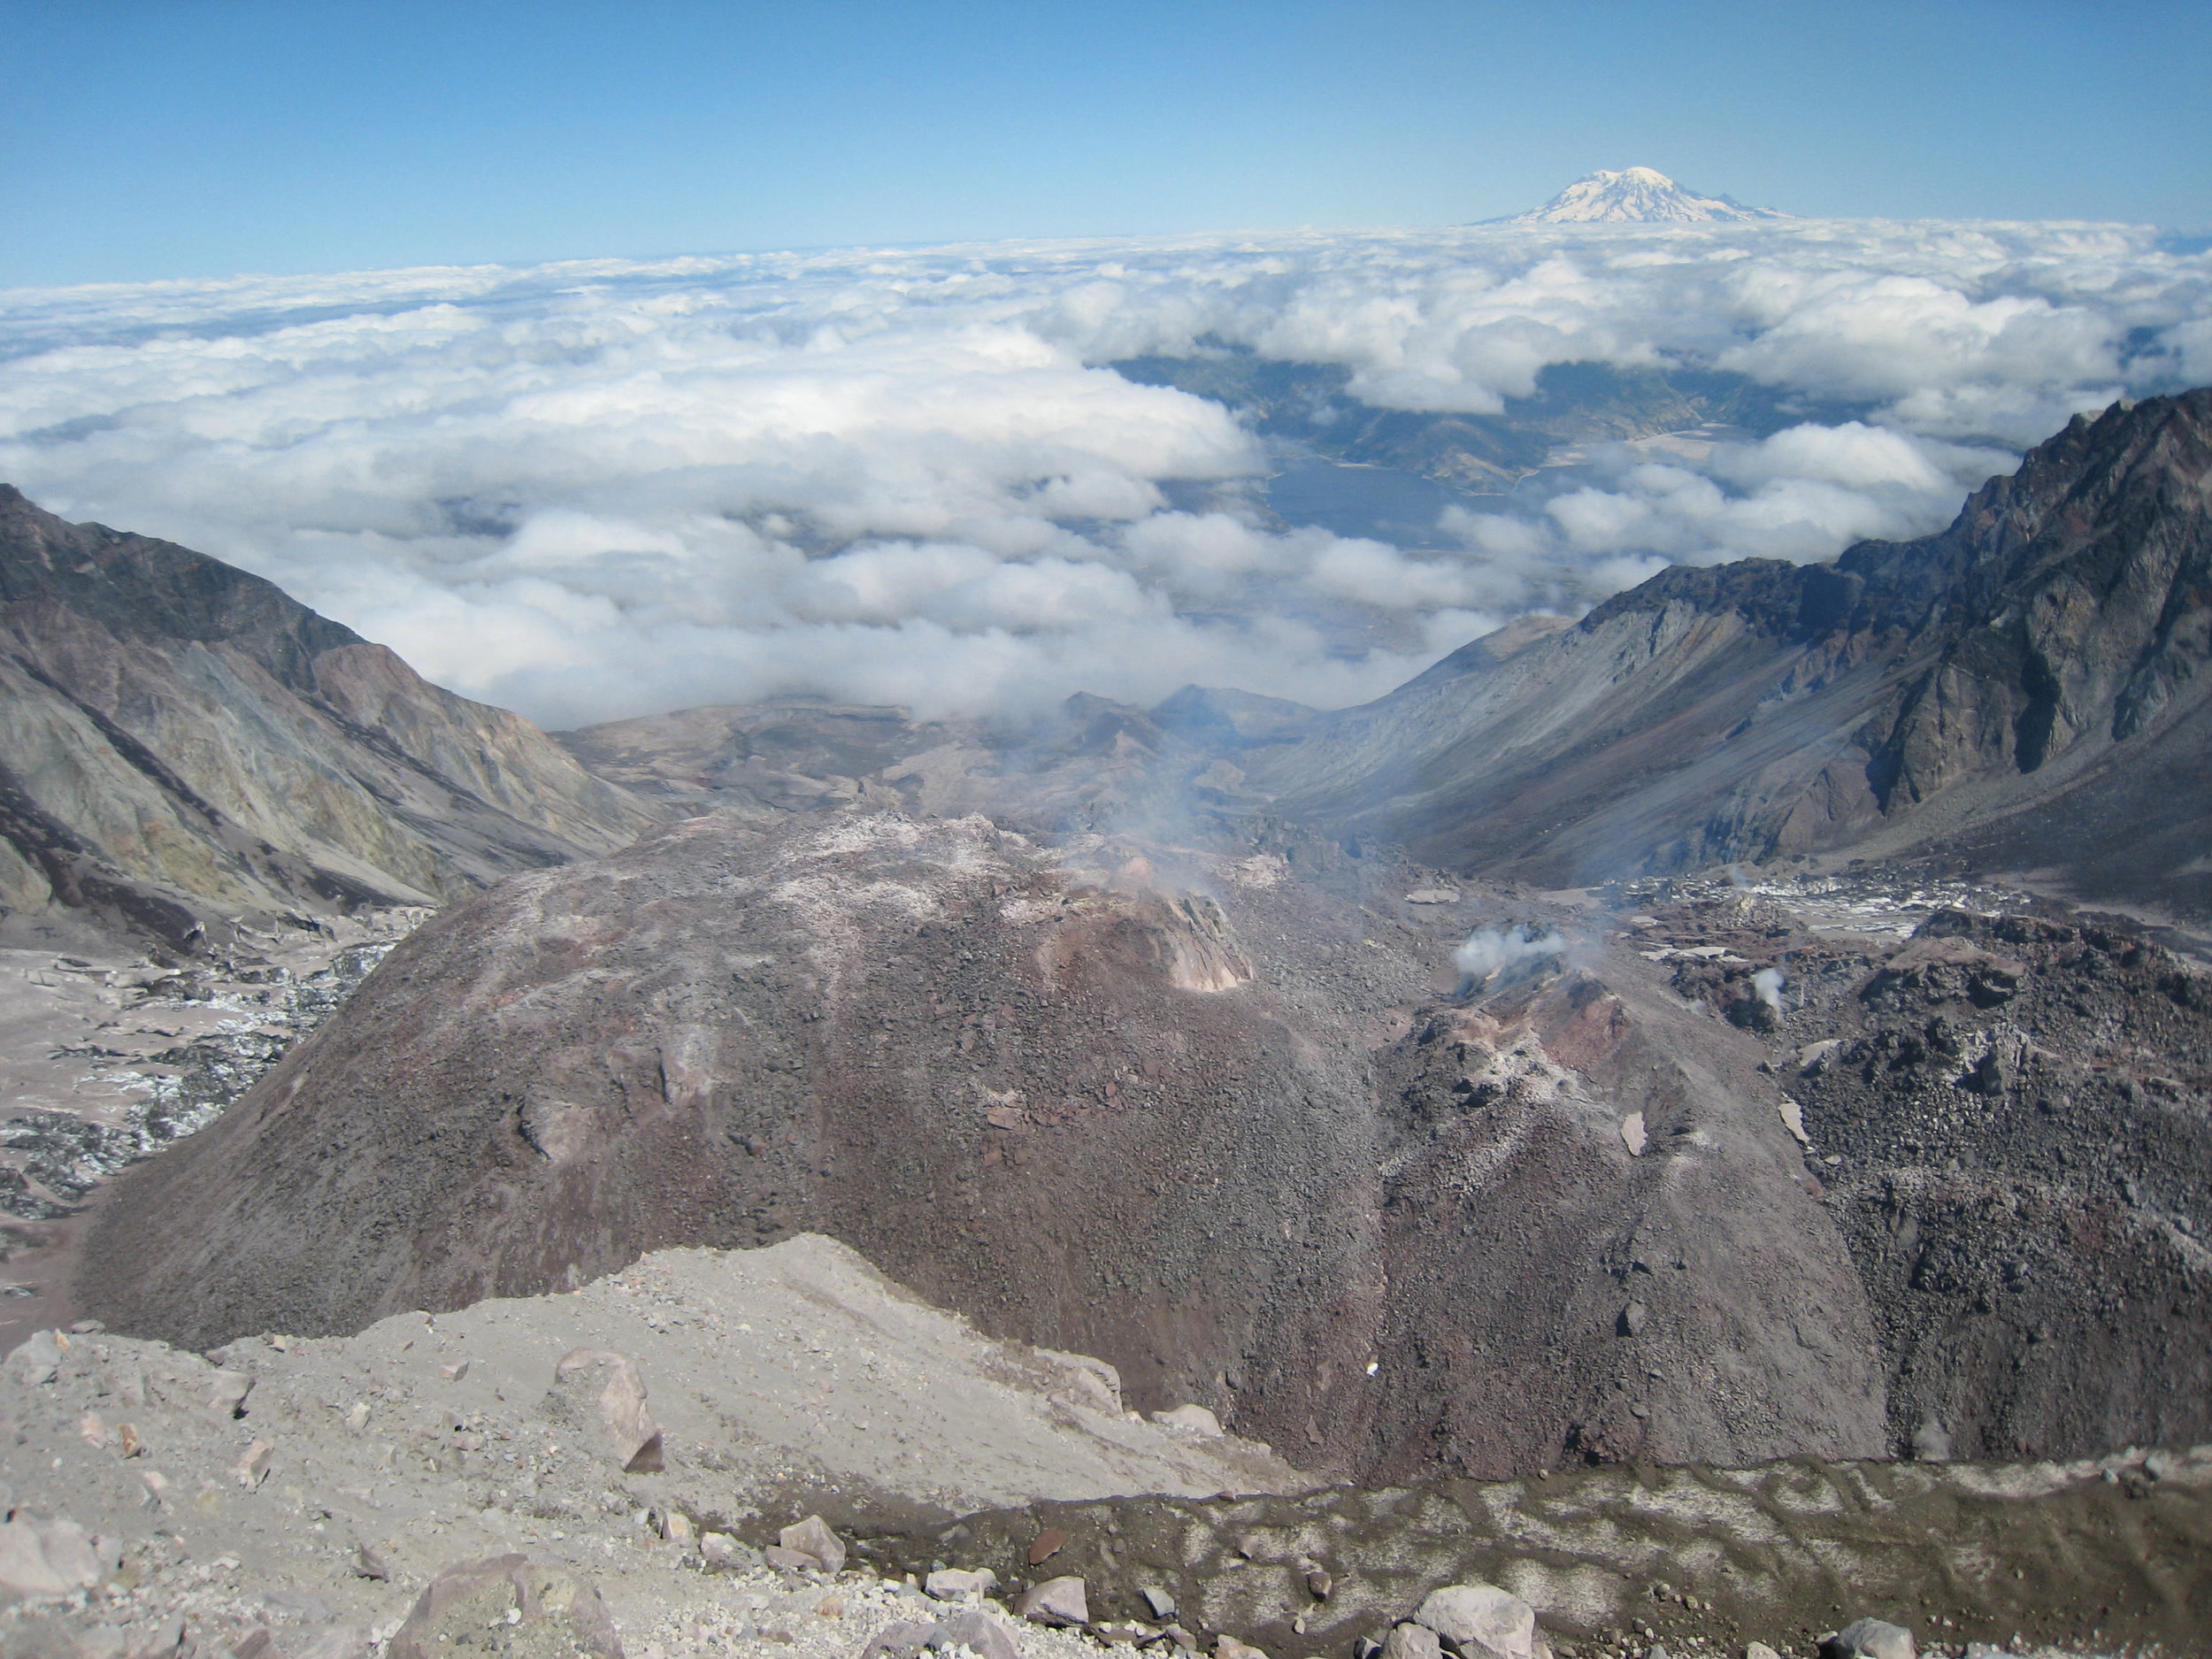 Mt. St. Helens dome in 2007